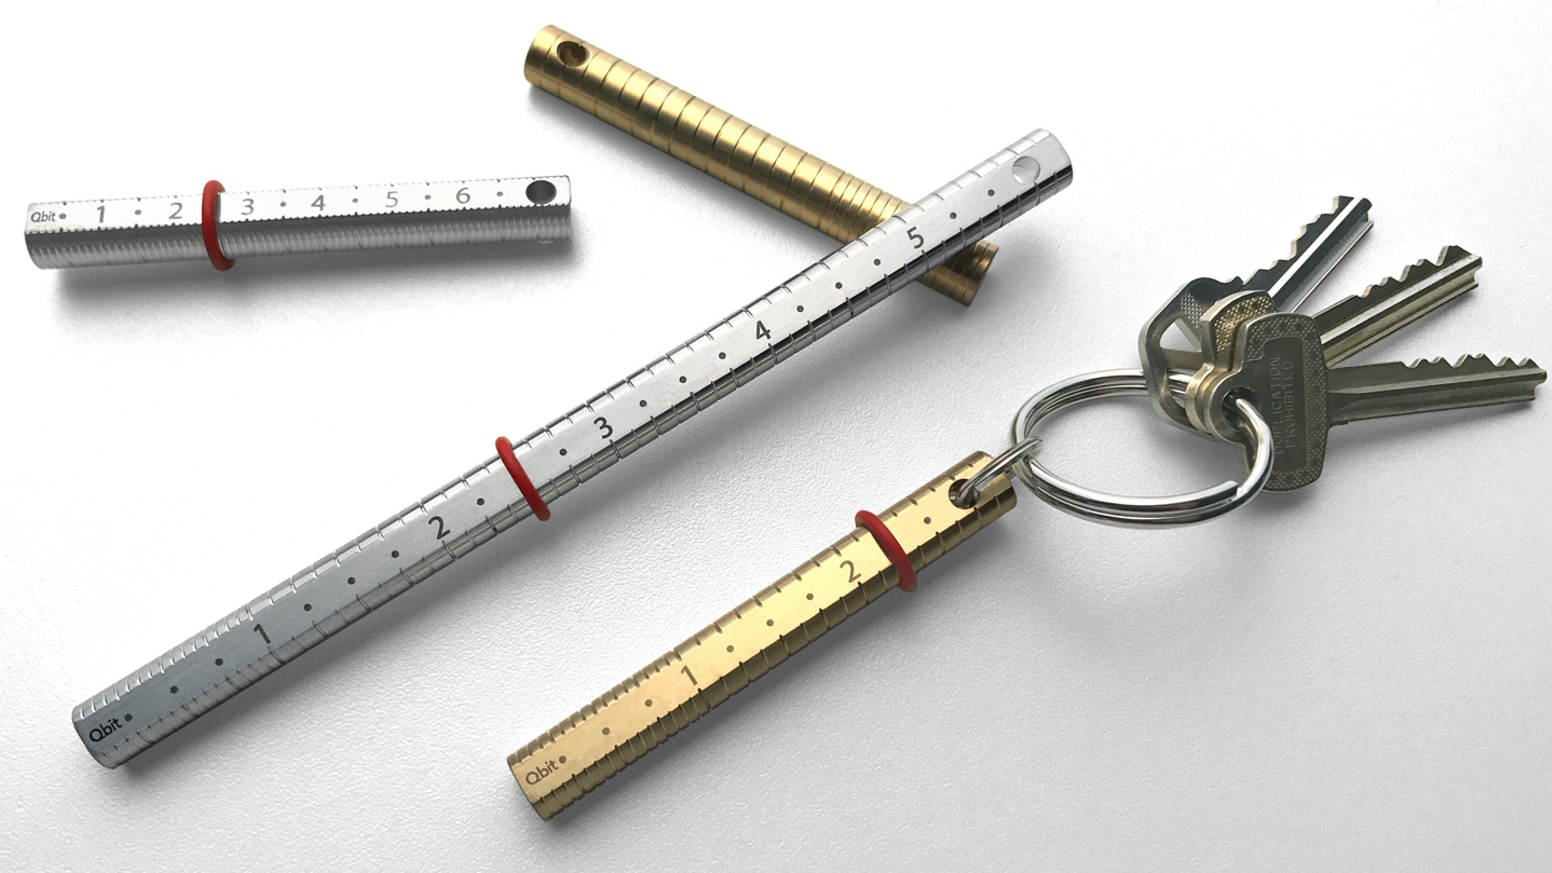 Precision machined Brass & Stainless Steel measuring artifacts - your own personal 'standard'